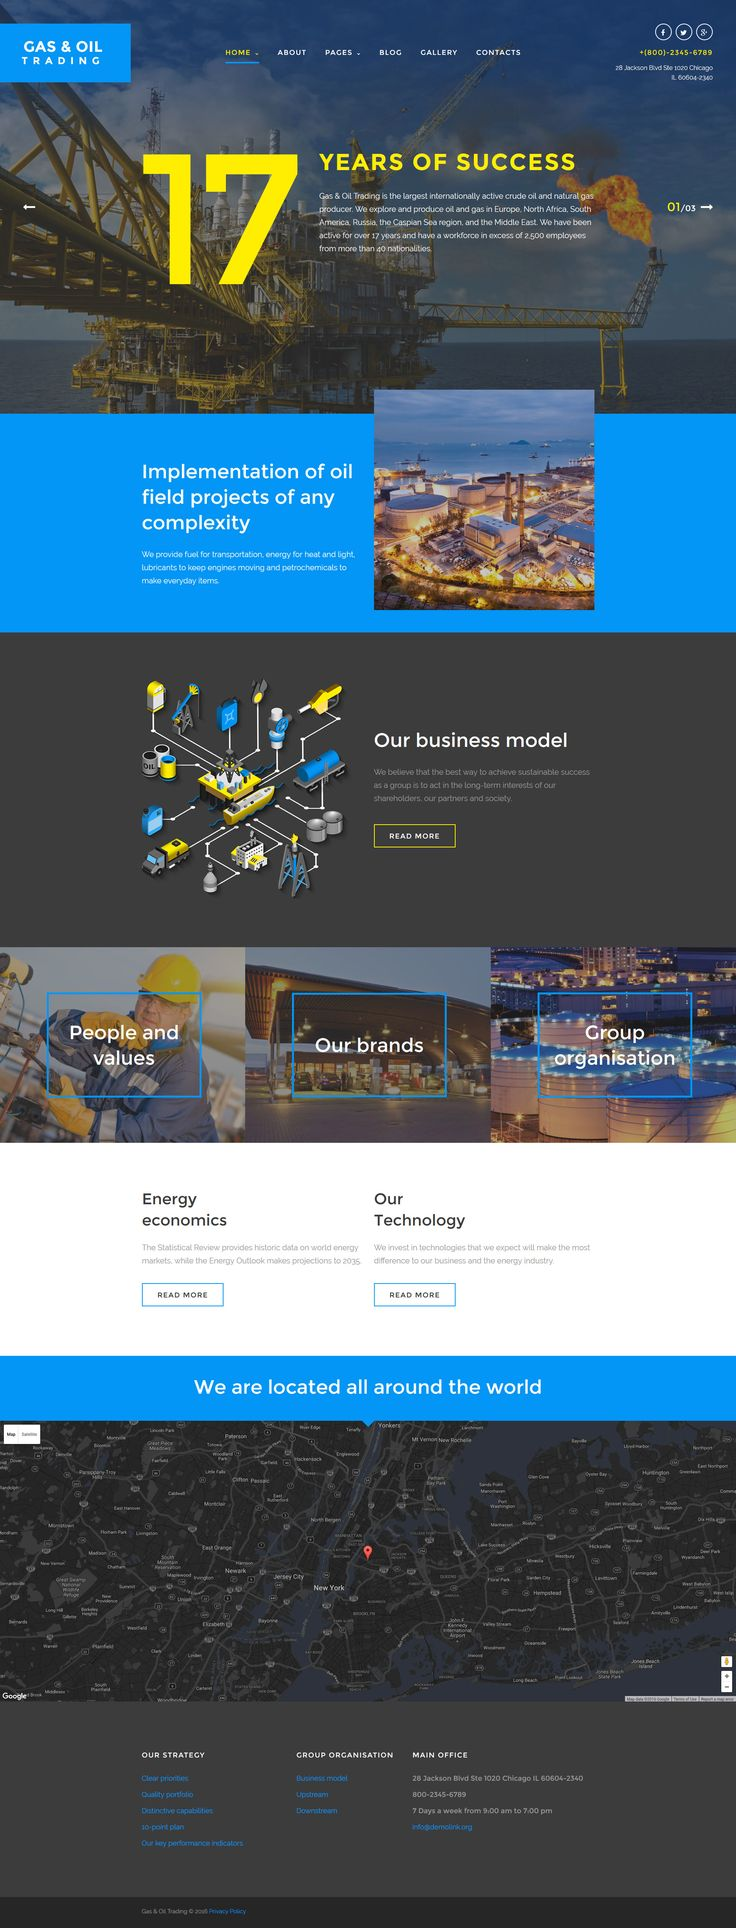 Gas & Oil Responsive Joomla Template - http://www.templatemonster.com/joomla-templates/gas-oil-responsive-joomla-template-58296.html